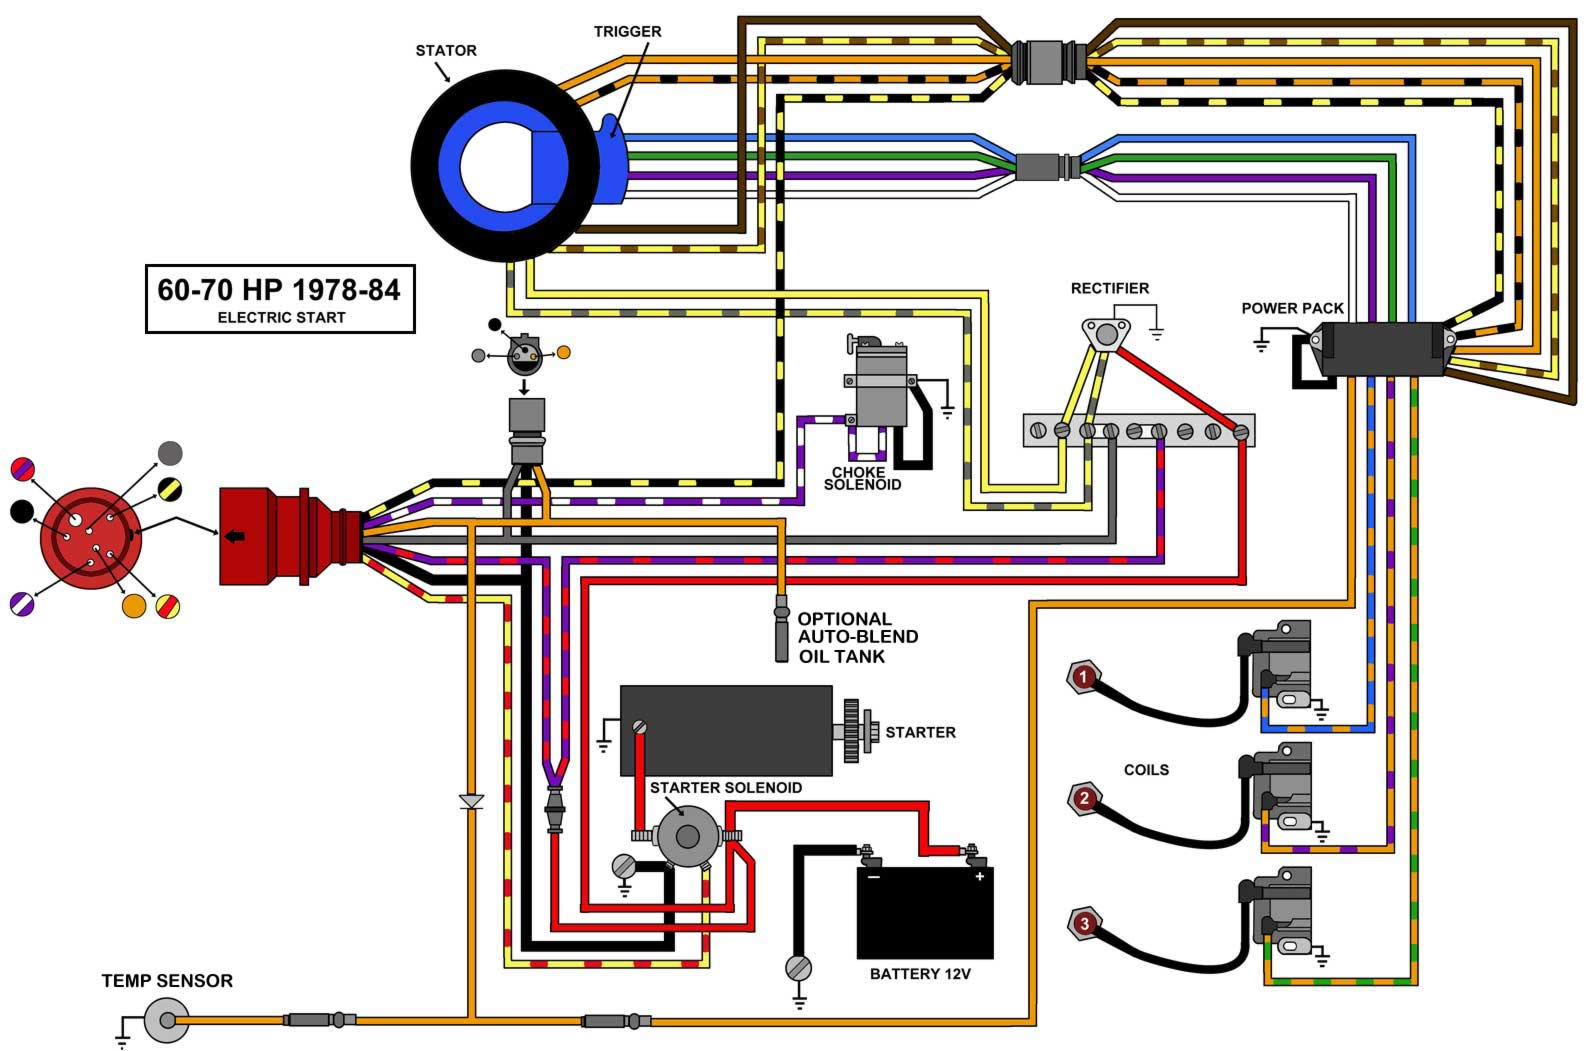 78 84_3 CYL_EL wiring tach from johnson controls page 1 iboats boating forums omc wiring harness diagram at pacquiaovsvargaslive.co